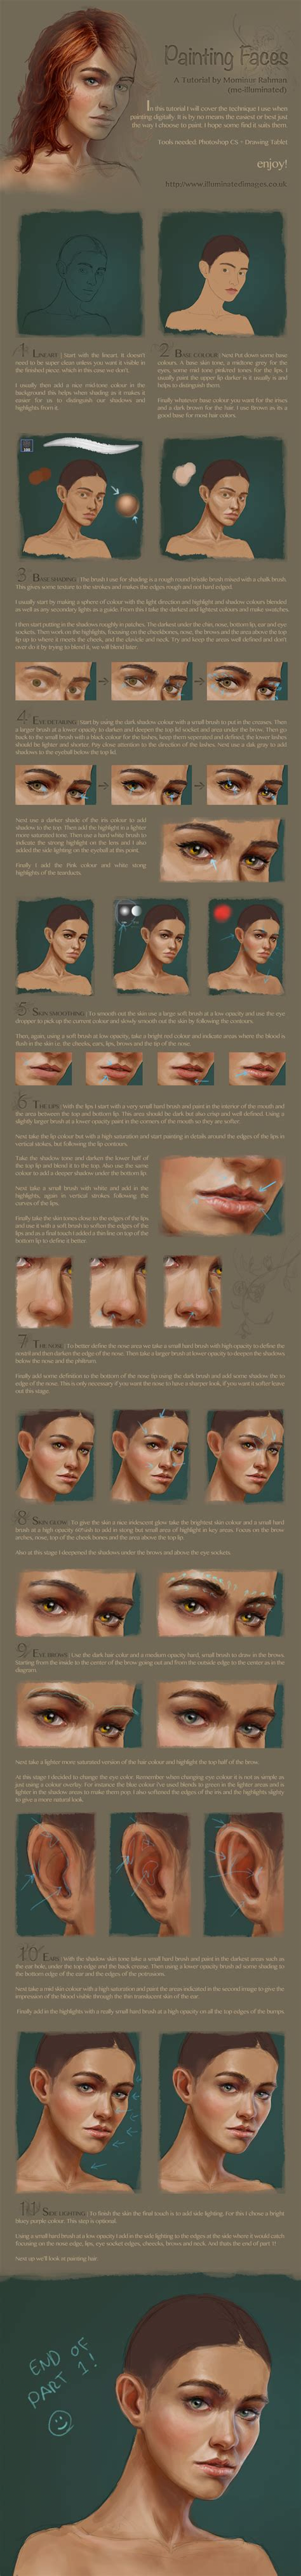 watercolor tutorial part 1 digital face portrait painting tutorial part 1 by me